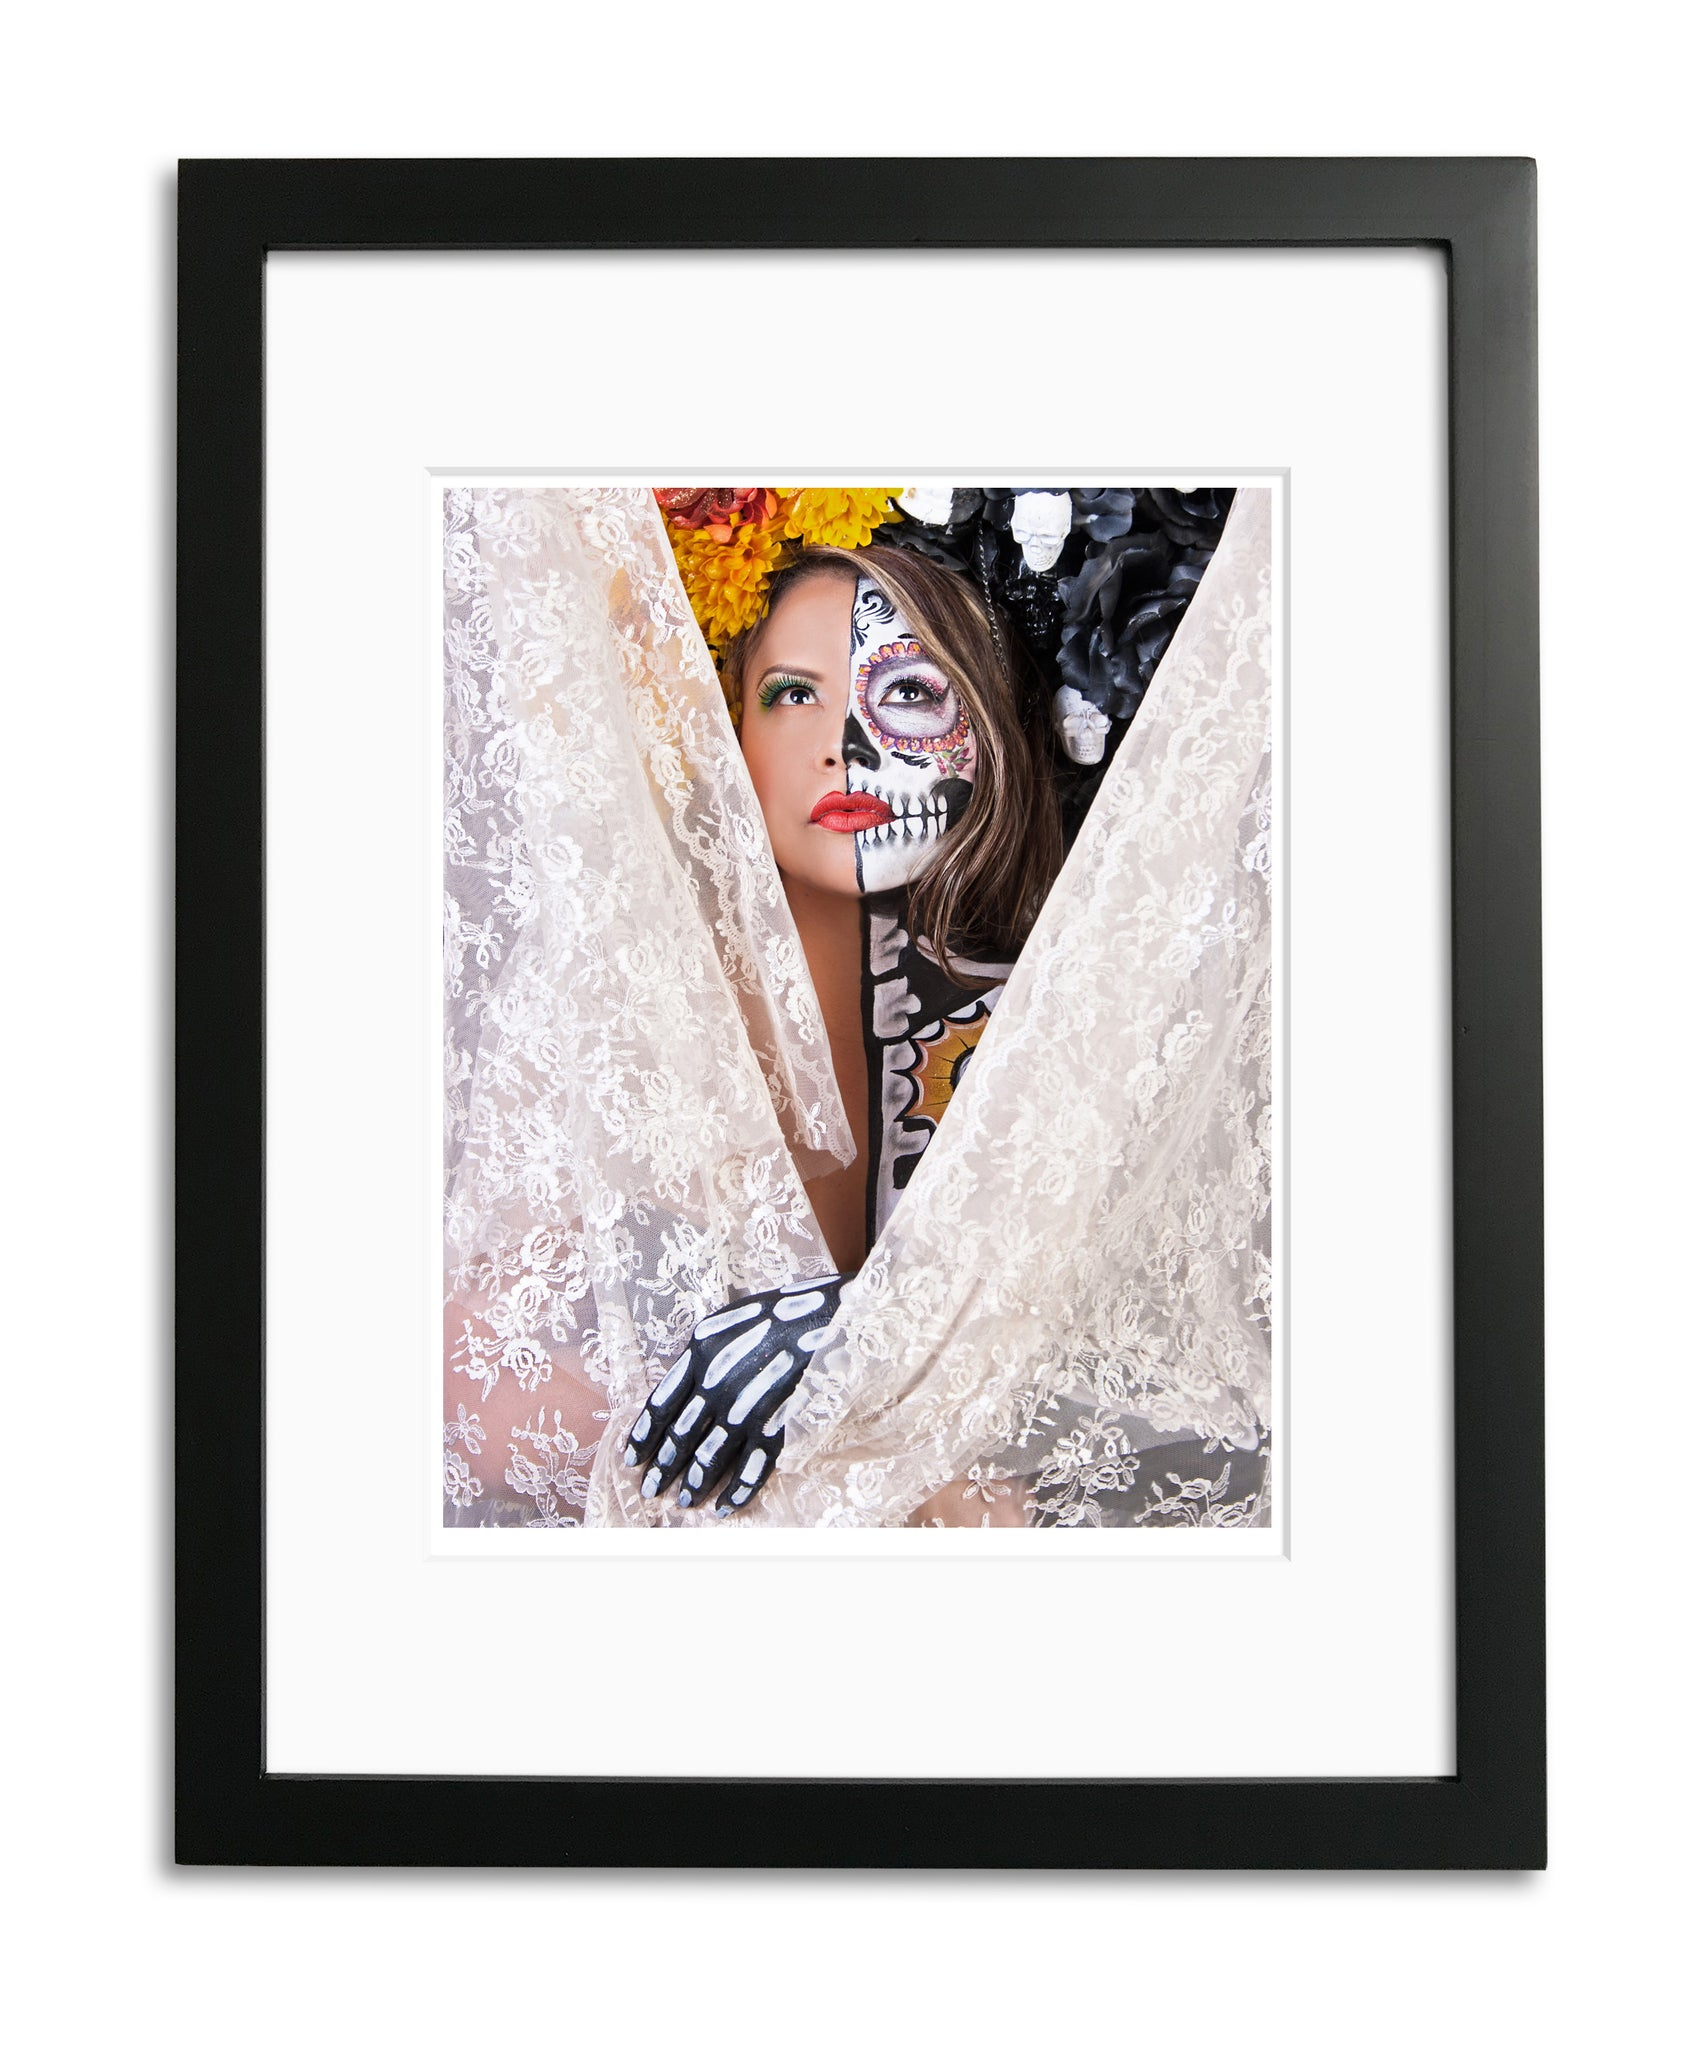 Behind the Lace by Chris Gomez, Limited Edition Print